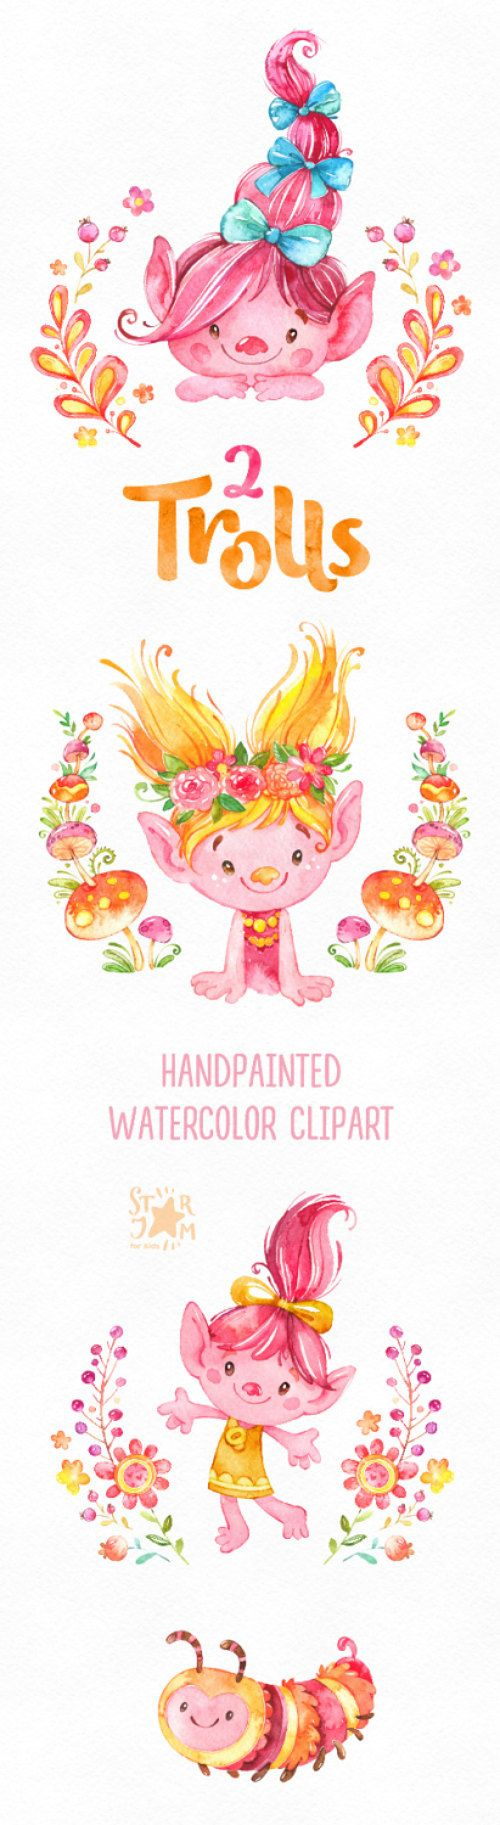 This is part 2 of Magical Clipart set with Trolls is just what you needed for the perfect invitations, craft projects, paper products, party decorations, printable, greetings cards, posters, stationery, planners, scrapbooking, stickers, t-shirts, baby clothes, web designs and much